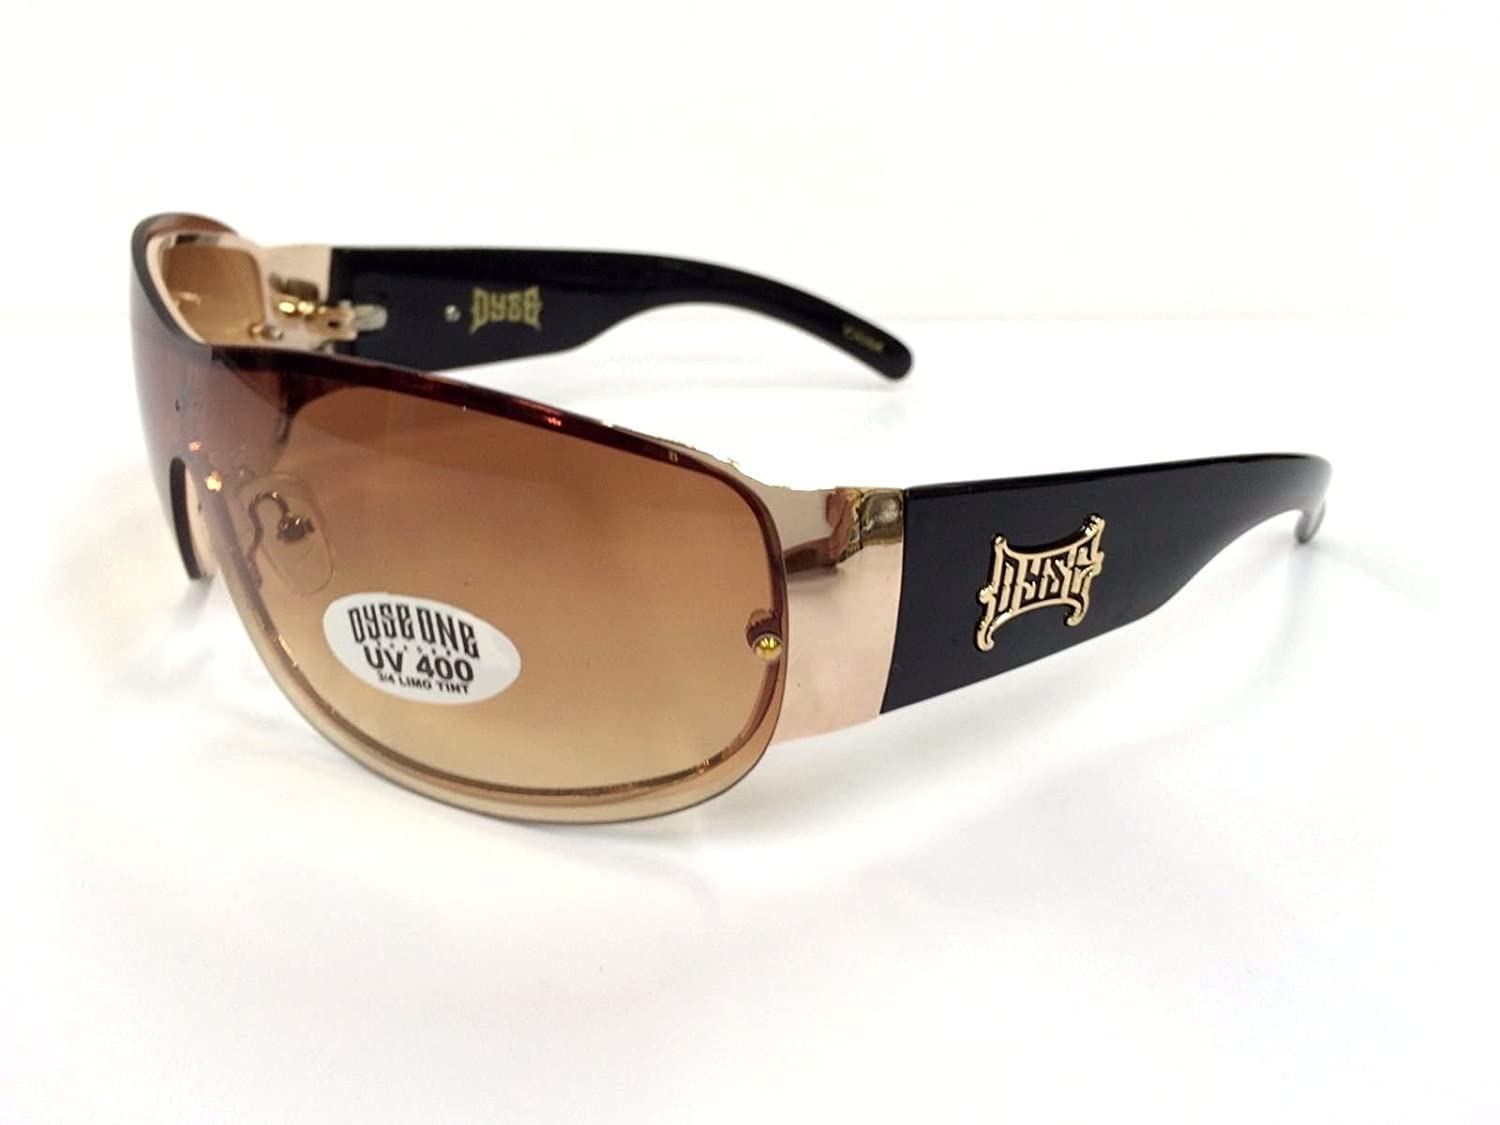 Authentic Dyse One Shades Gold Brown Deluxe Sunglasses California Lowrider Style